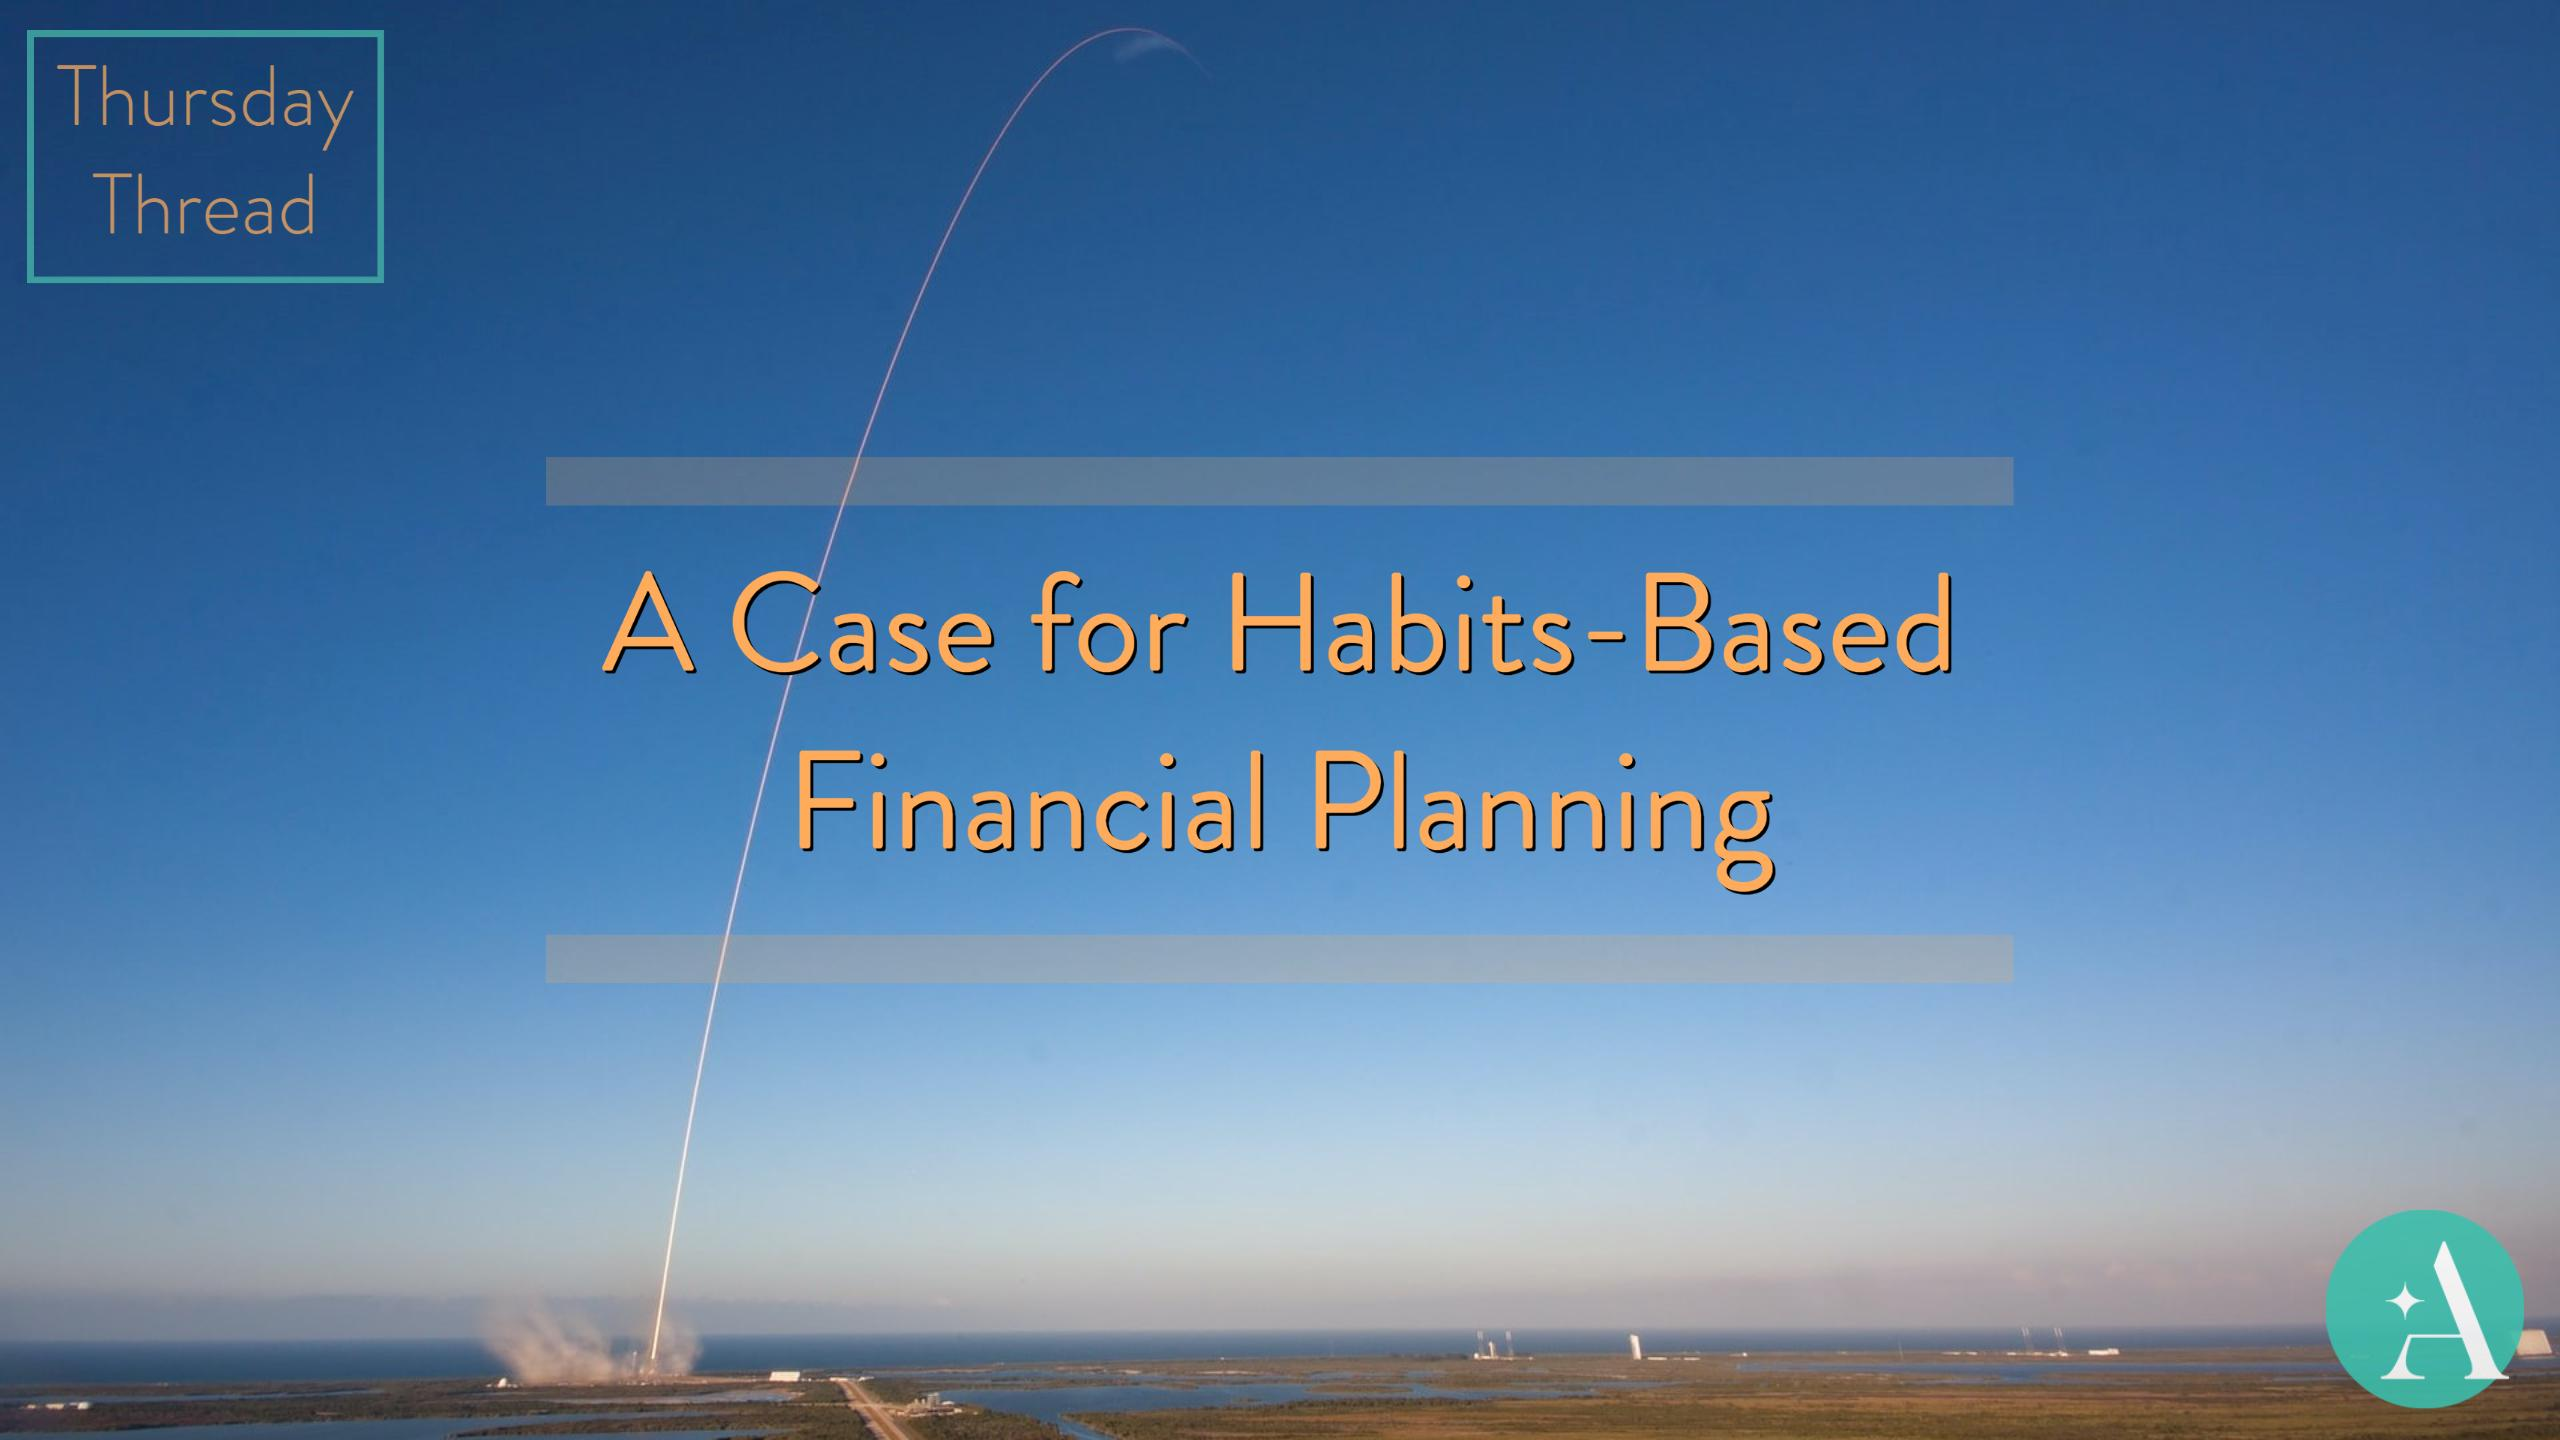 Thursday Thread: A Case for Habits-Based Financial Planning Thumbnail